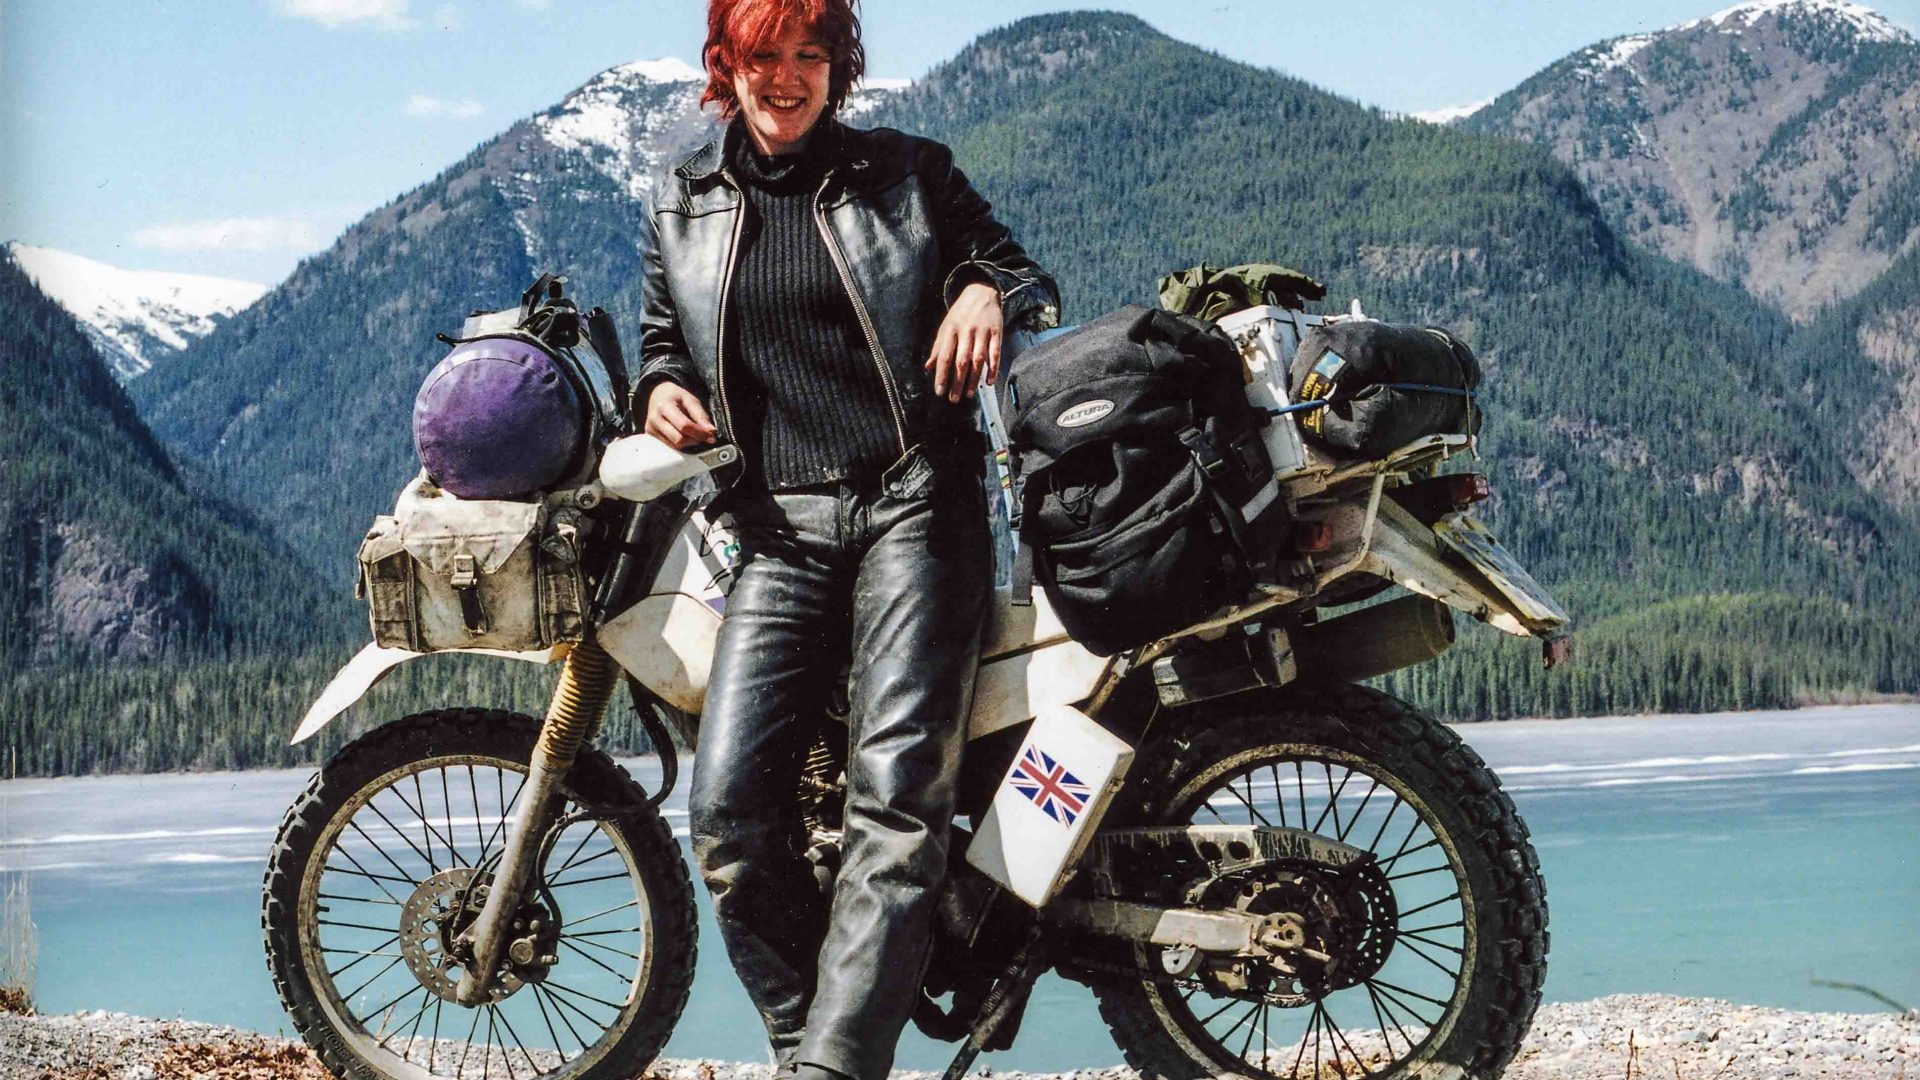 Lois pauses with her motorcycle at a lake in Canada.